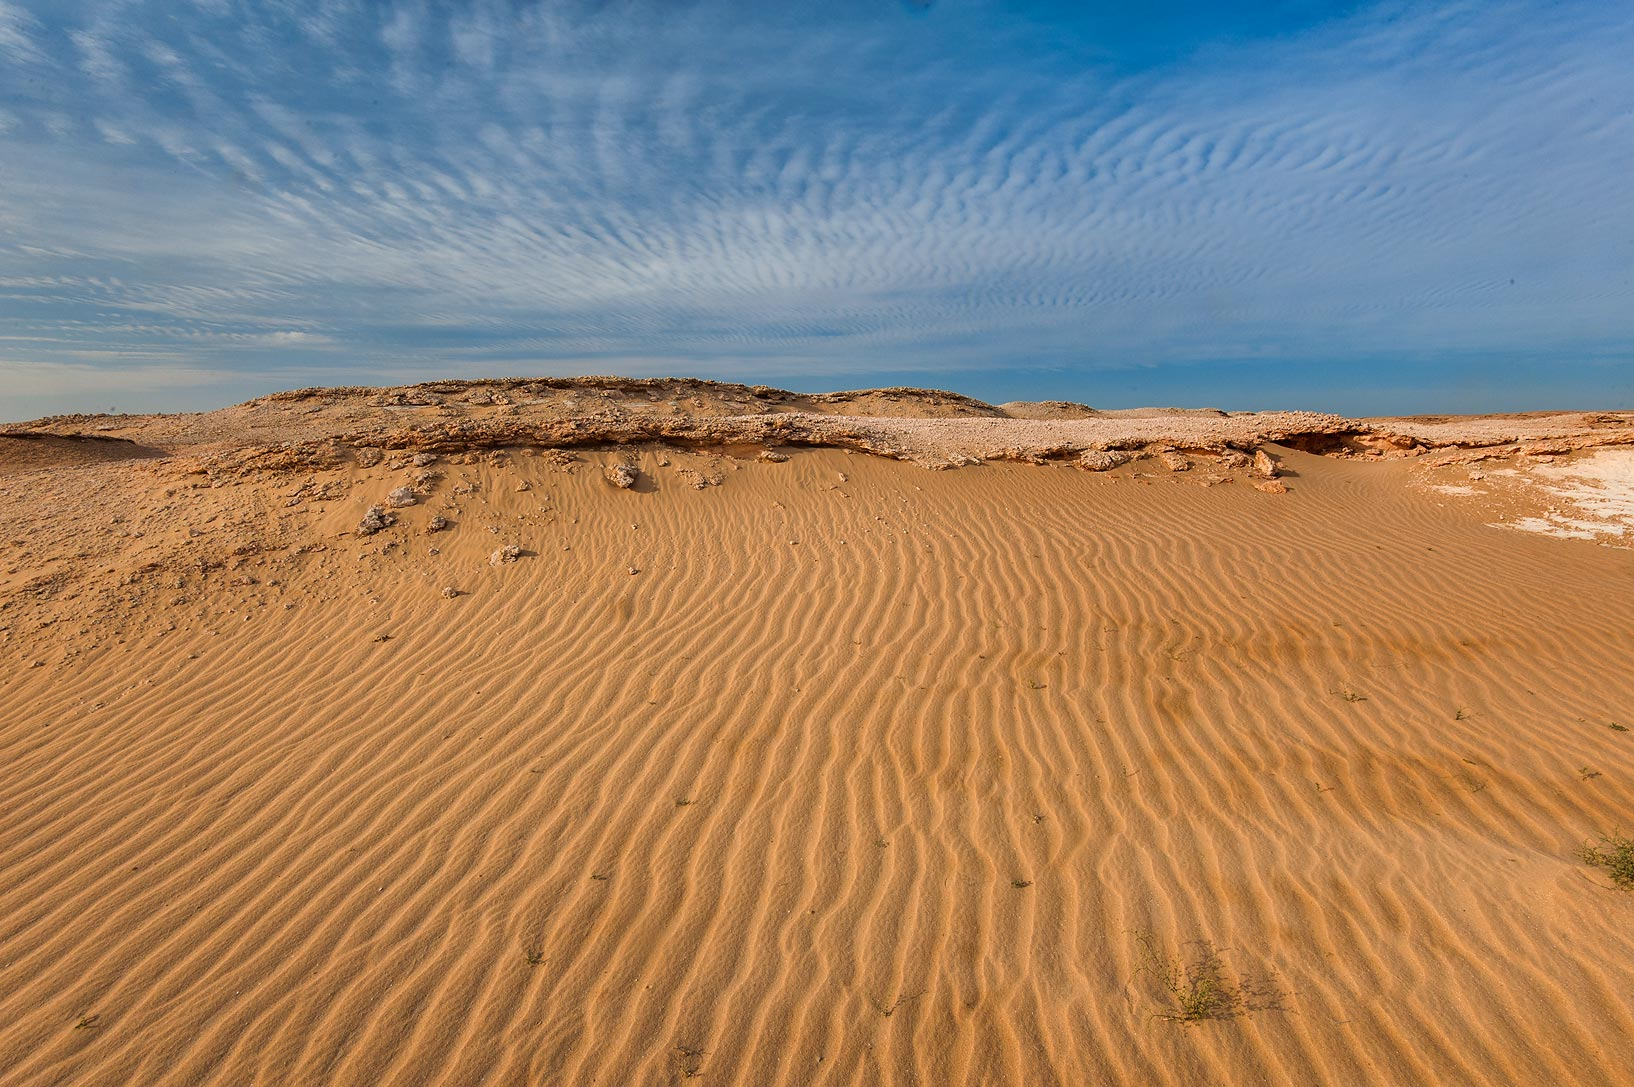 Sand and cloud ripples in area of Jebel Al-Nakhsh (Khashm an Nakhsh). South-western Qatar